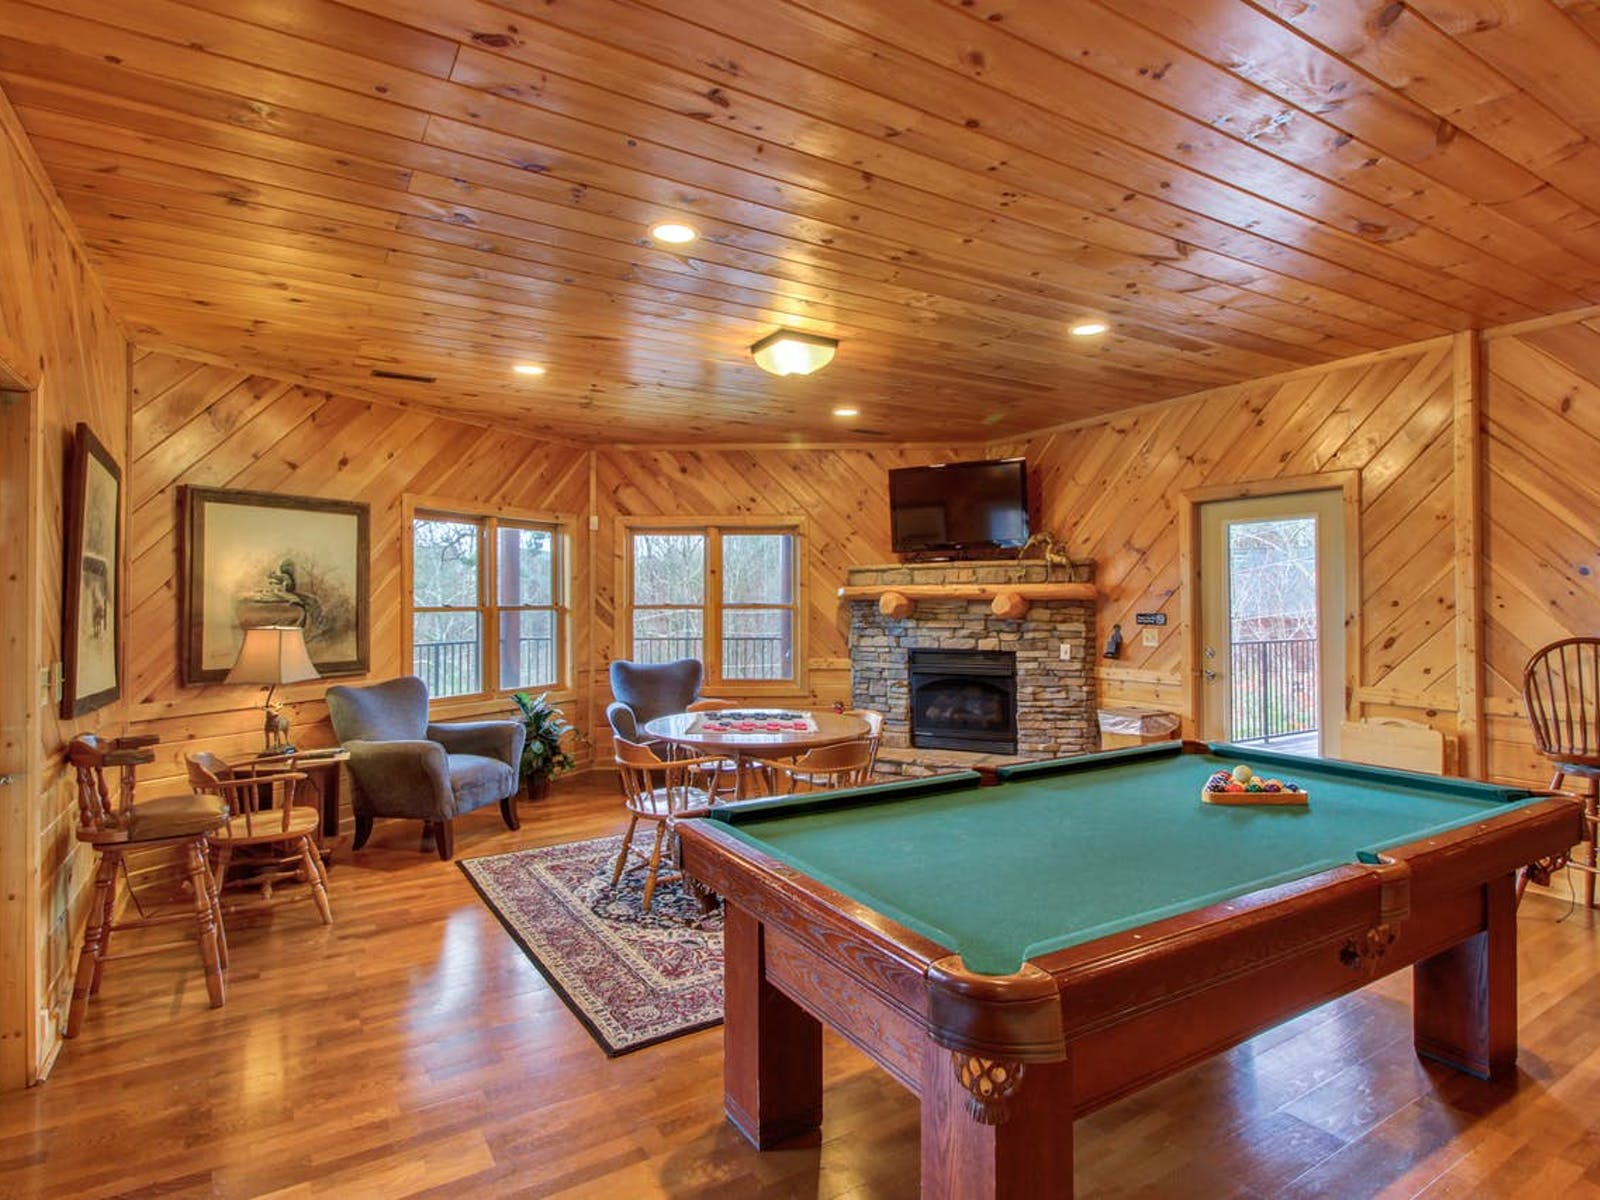 Sevierville vacation cabin with game room with a pool table, a fireplace, and TV